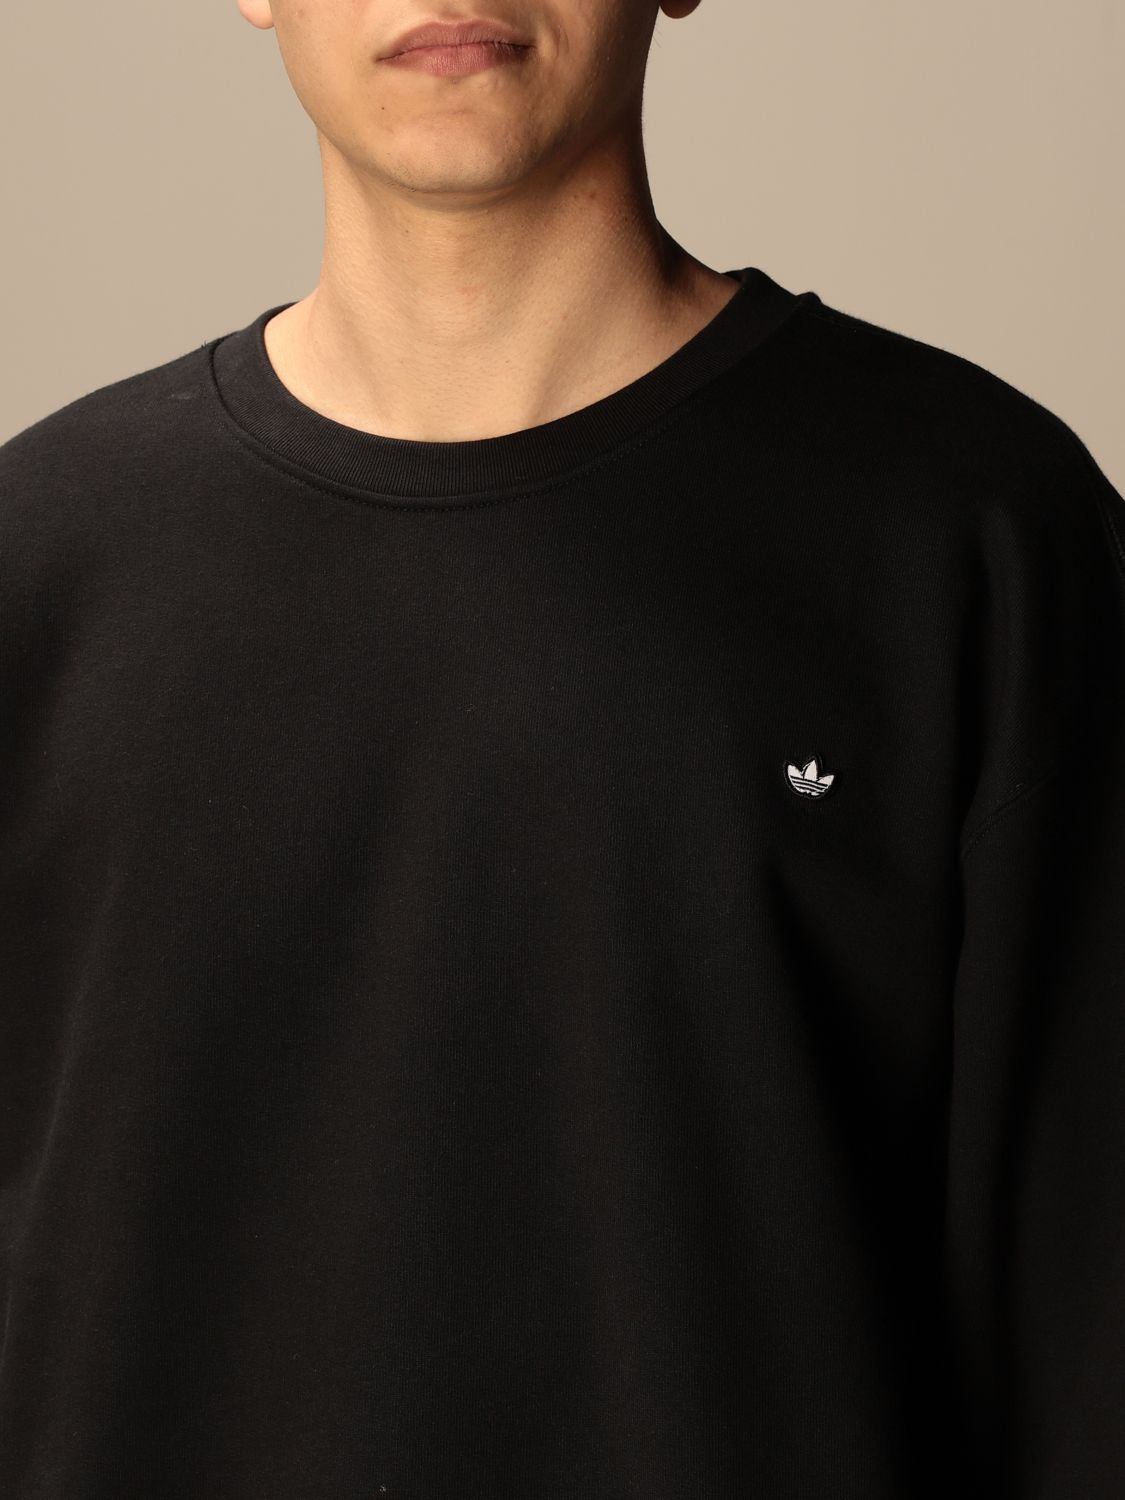 Sweatshirt Adidas Originals: Sweatshirt men Adidas Originals black 3